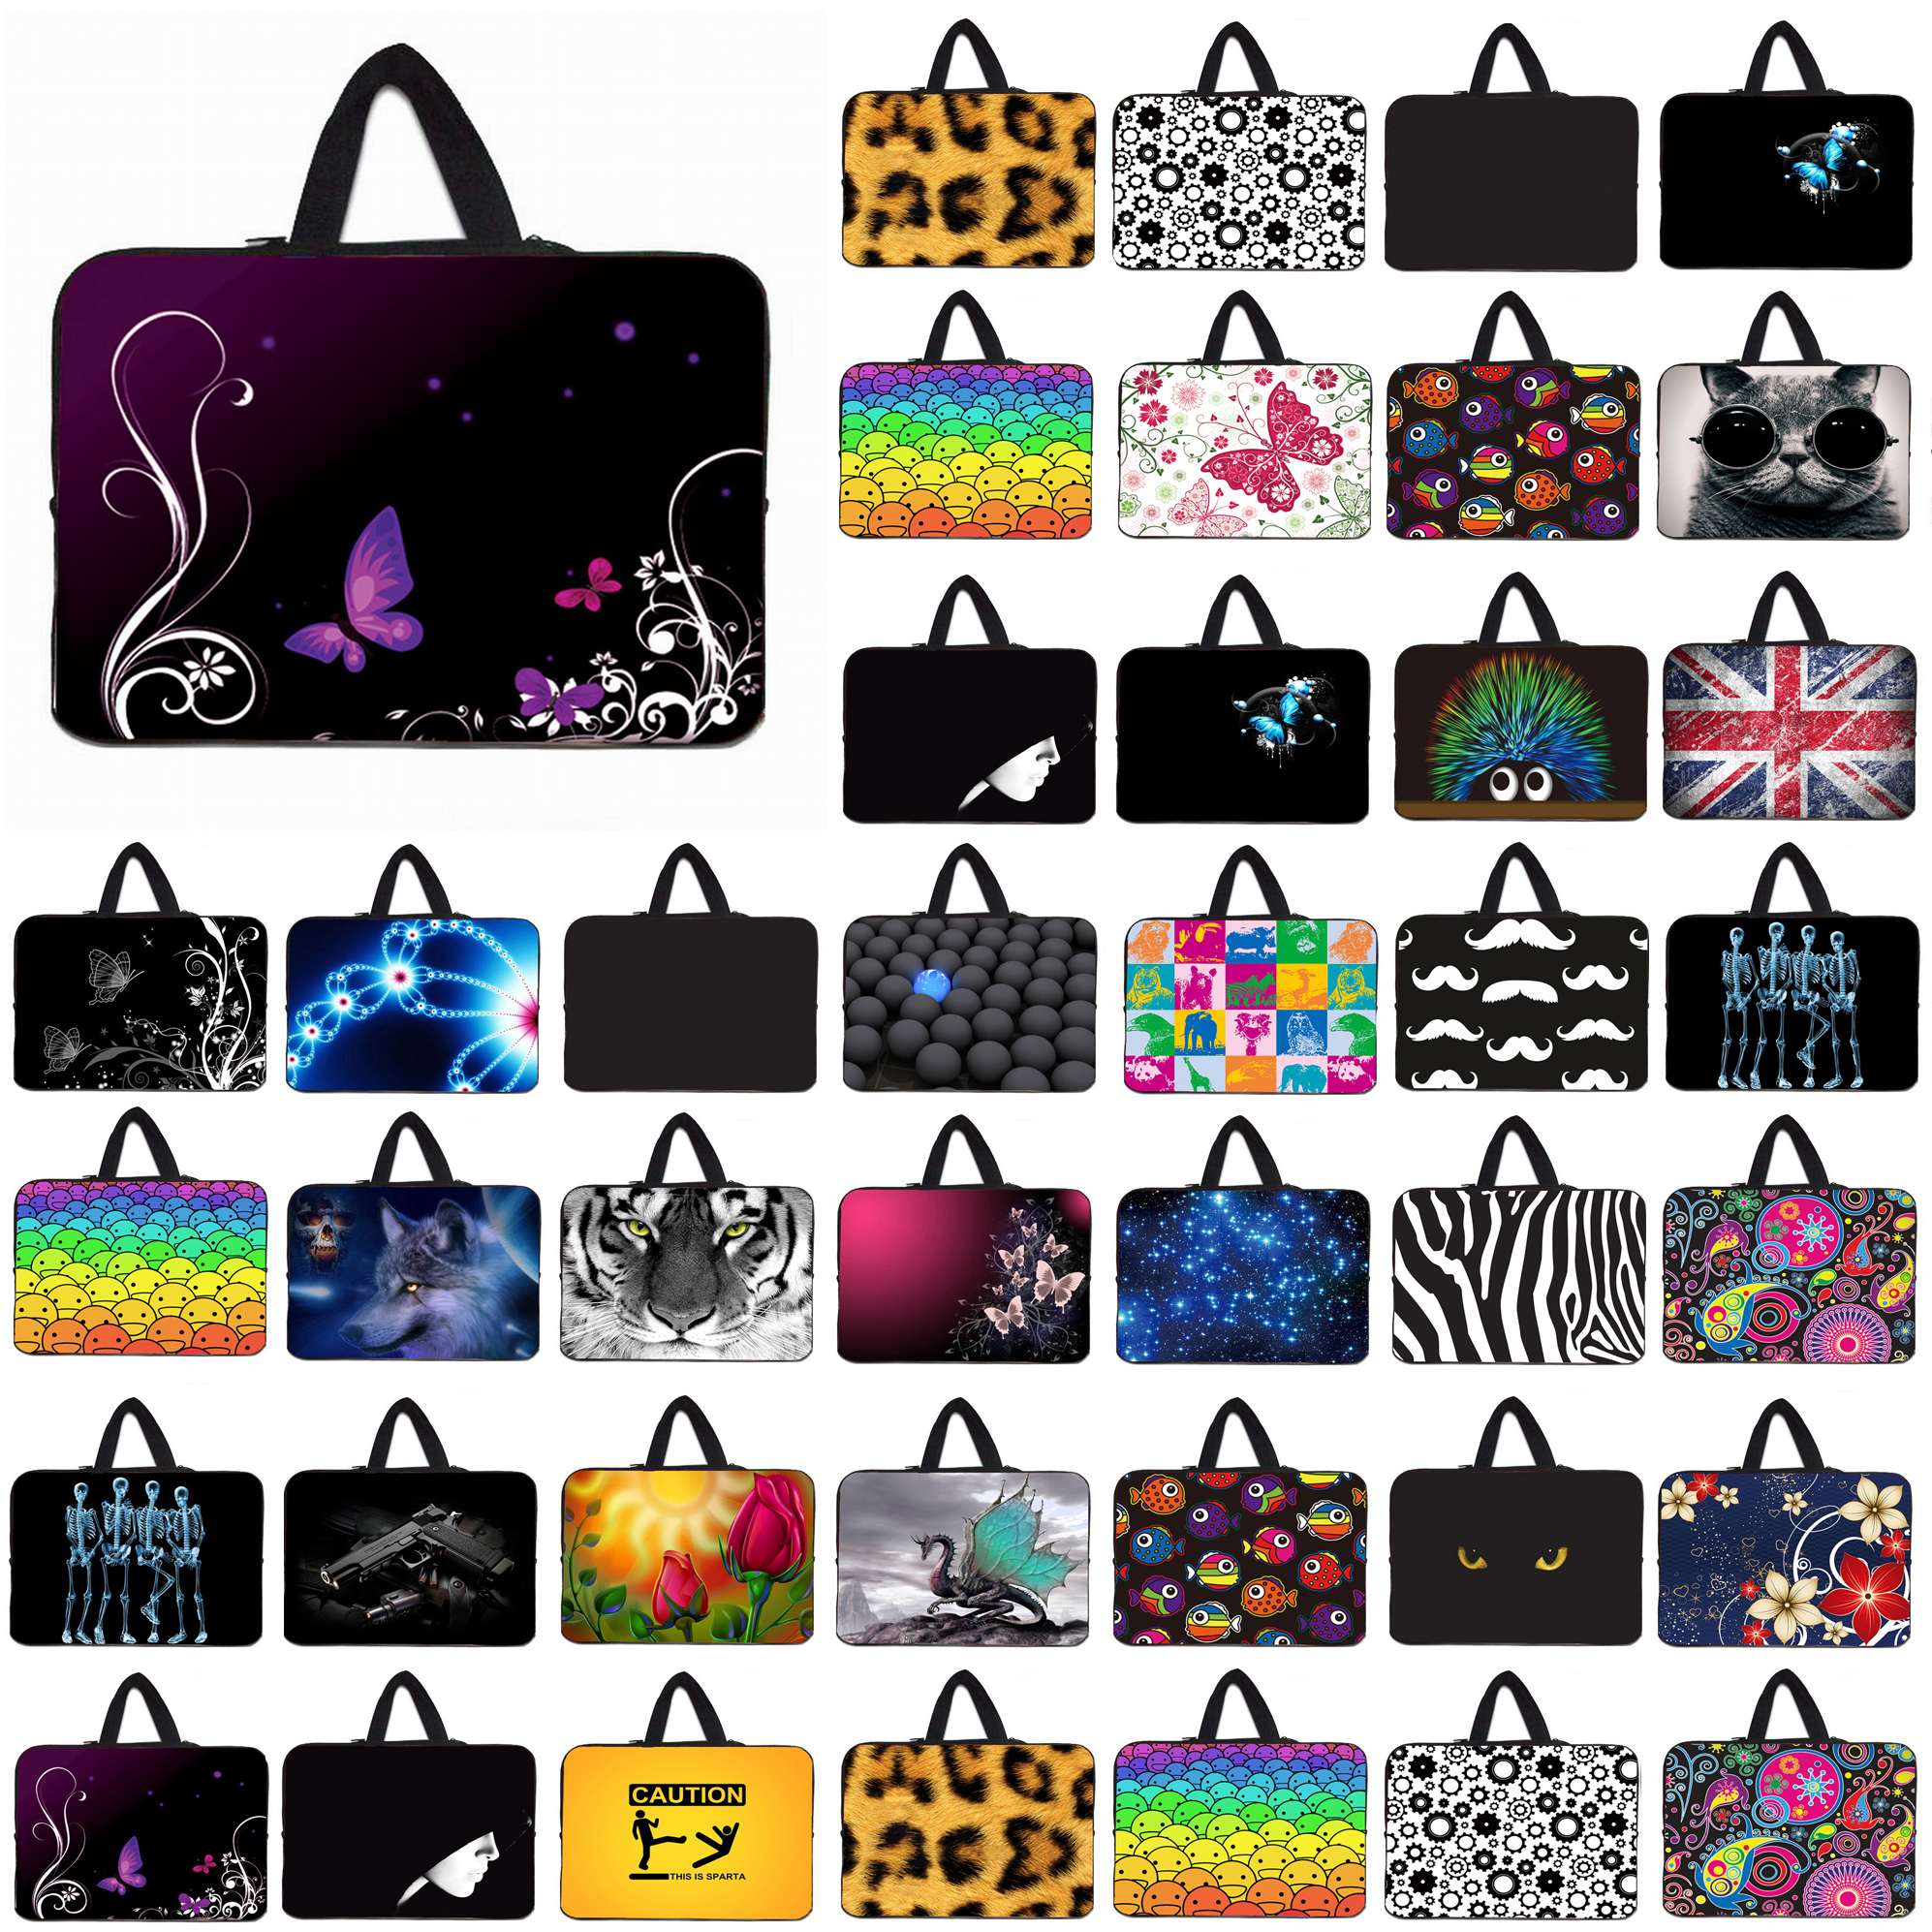 10 Mini PC Tablet 10.1 12 13 14 15 16 17 Neoprene Netbook Laptops Briefcase Protect Shell Cases Bags For Macbook Chuwi Xiaomi